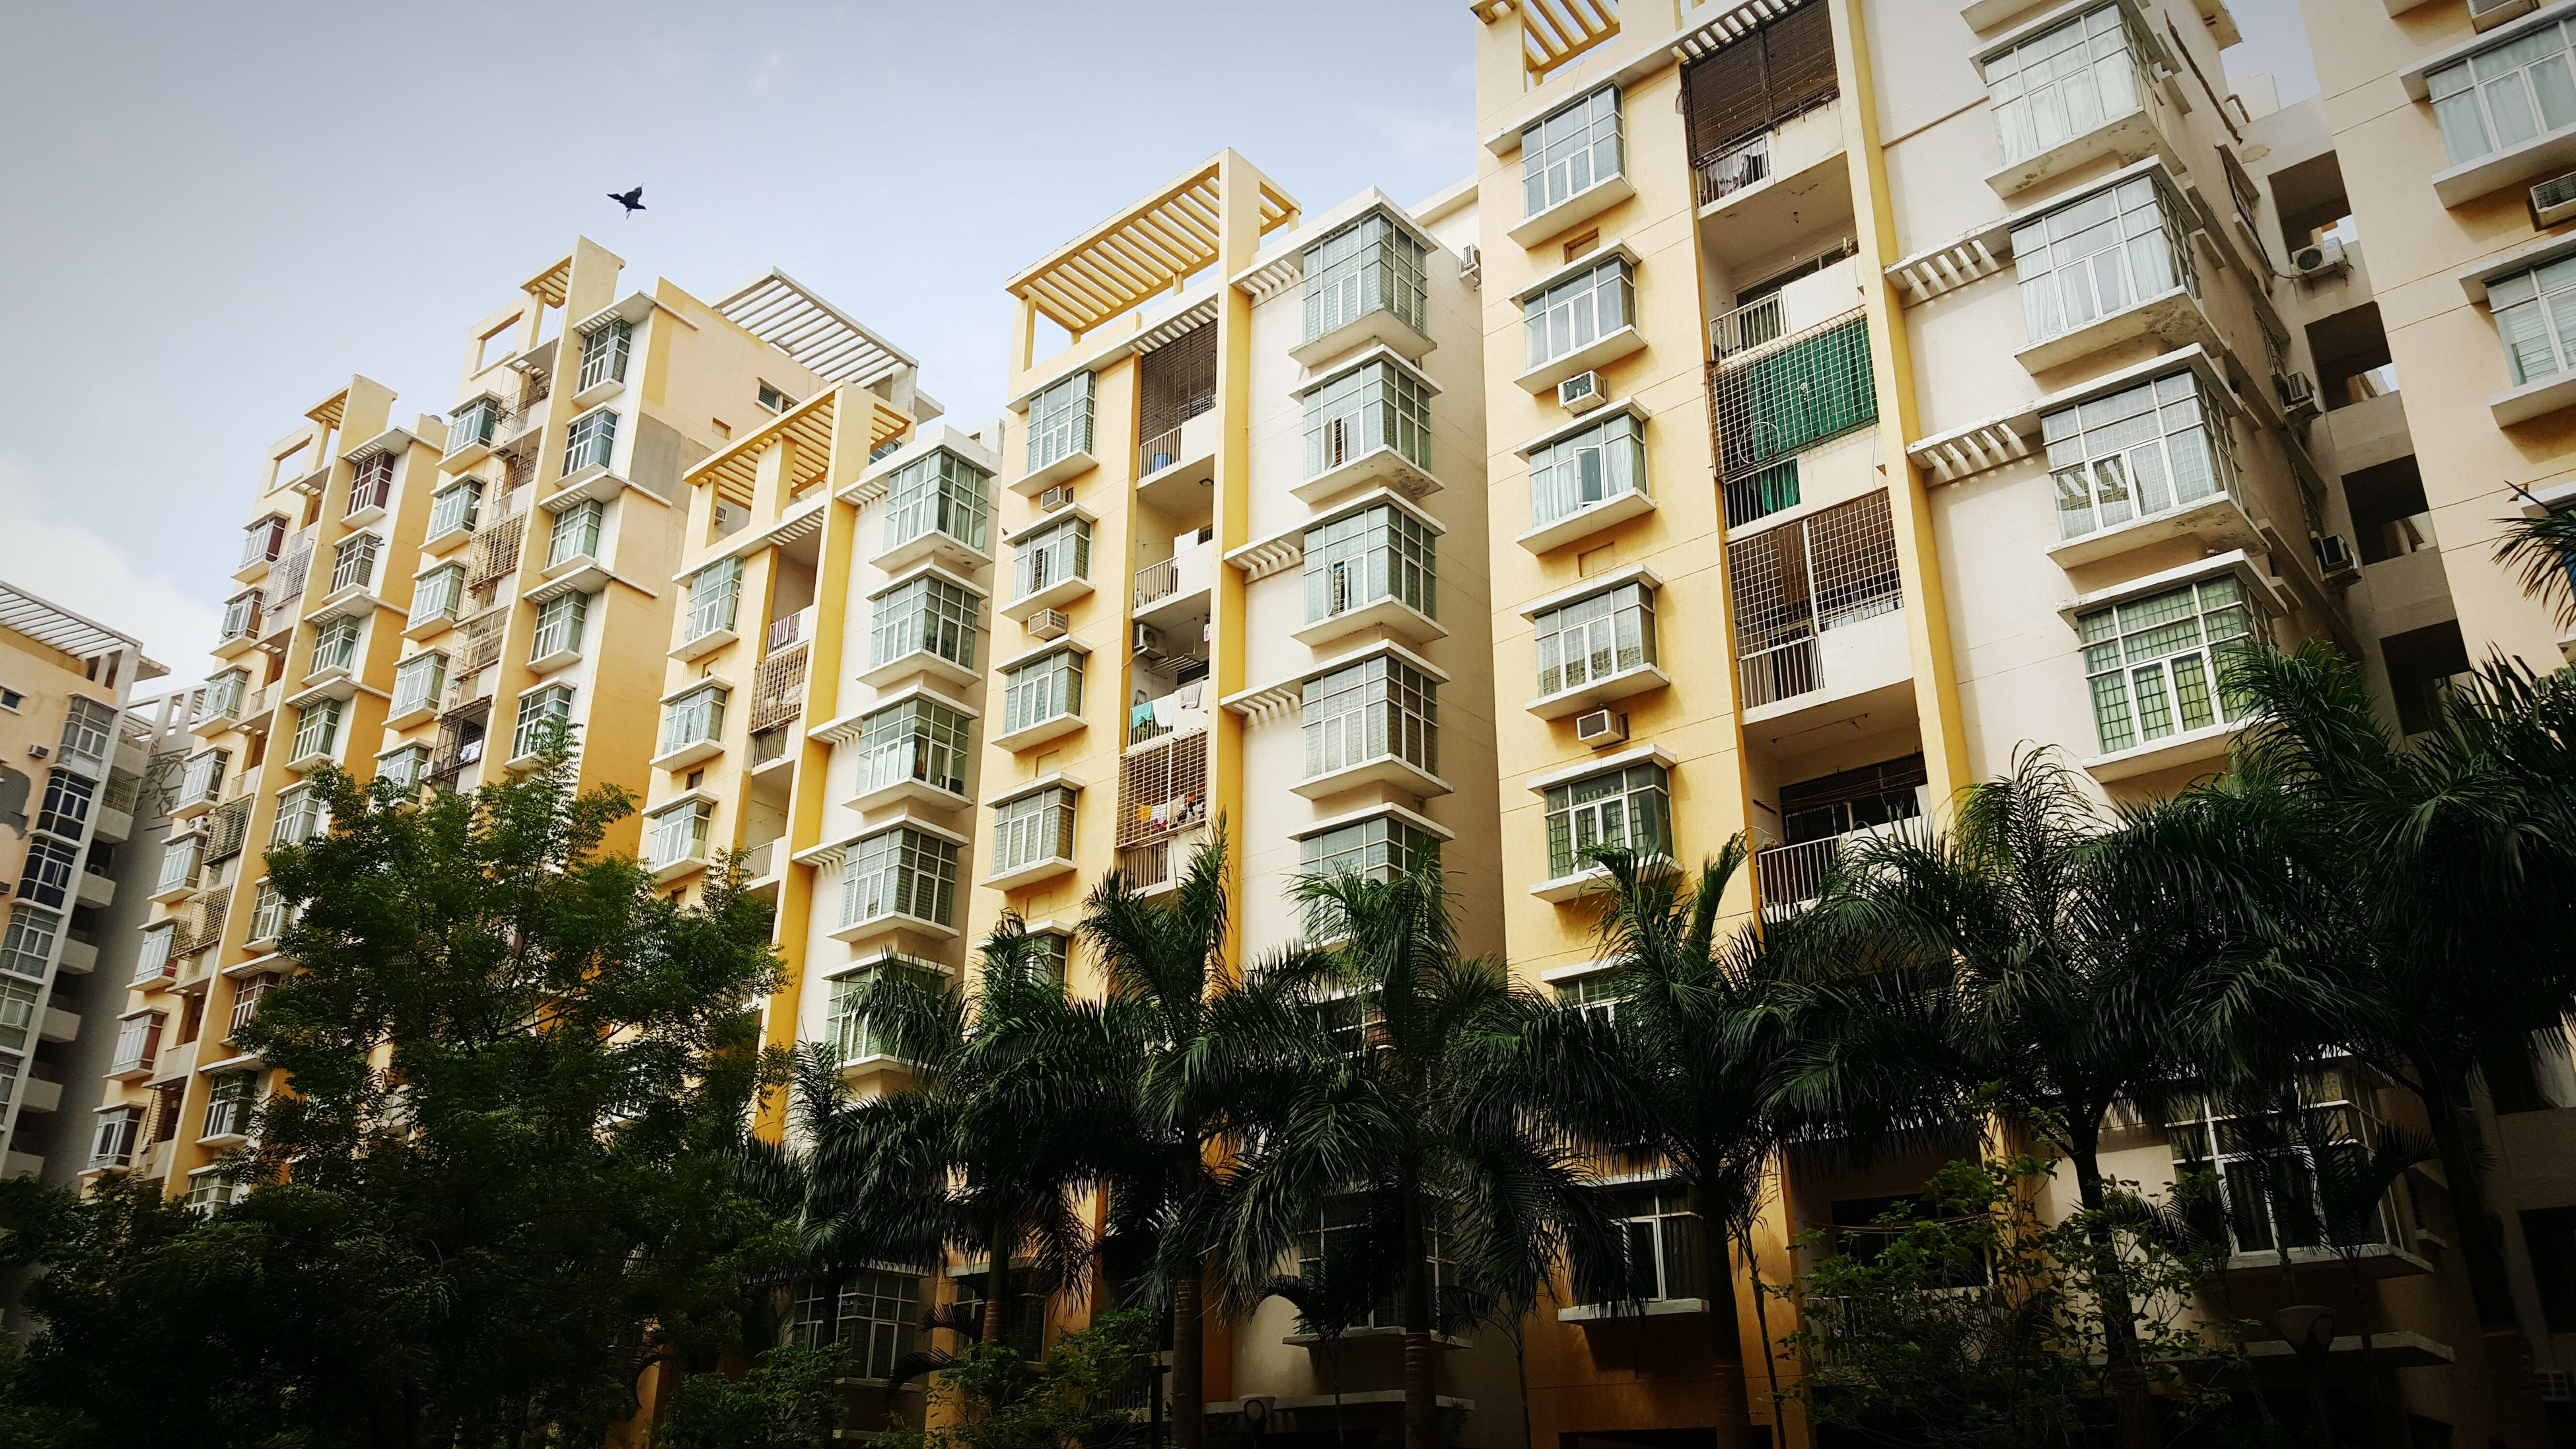 building exterior, architecture, built structure, low angle view, residential building, building, city, window, residential structure, tree, sky, apartment, growth, clear sky, day, outdoors, no people, city life, house, balcony